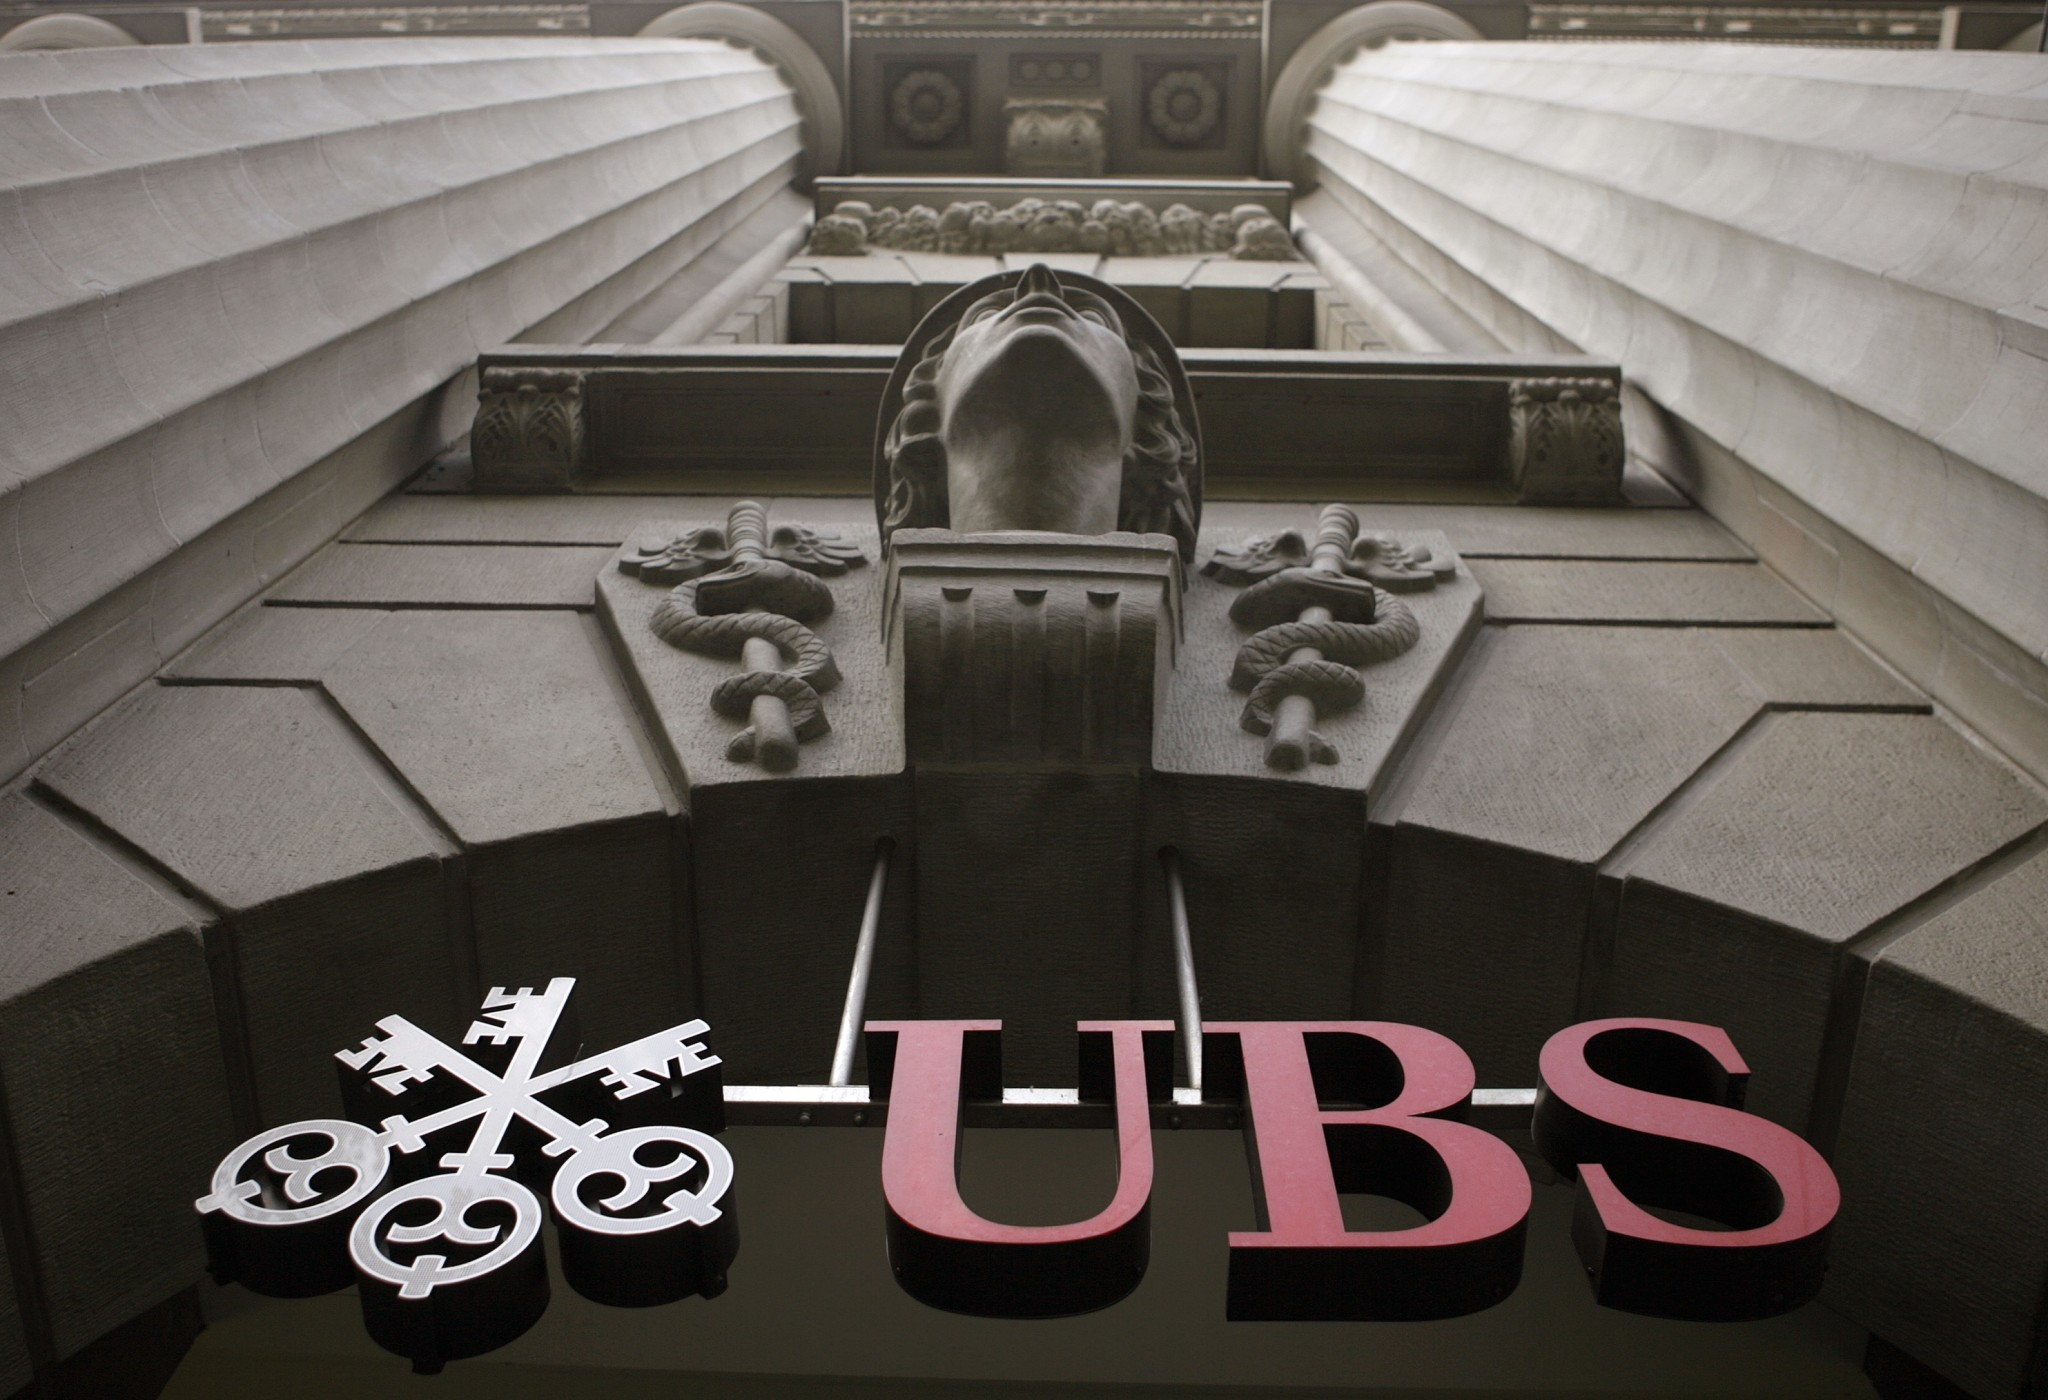 Ubs Wm Loses Sea Rmm For Uhnw Bank To Rejig Reporting Lines Asian Private Banker